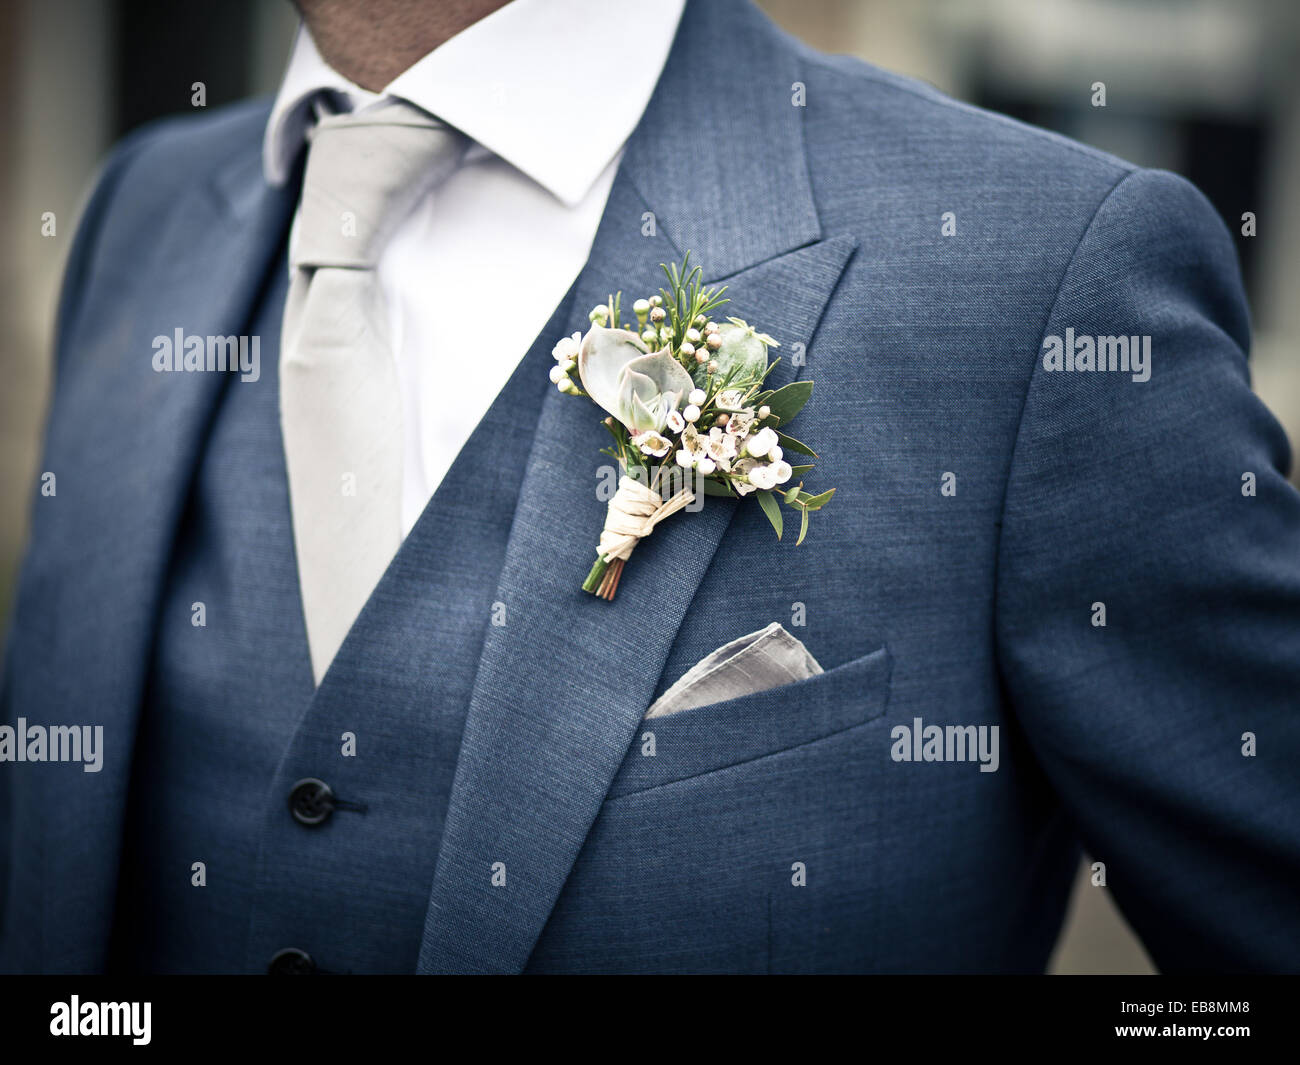 Grooms Button Hole On Blue Suit With White Shirt, Wedding Suit Stock Photo, Royalty Free Image ...